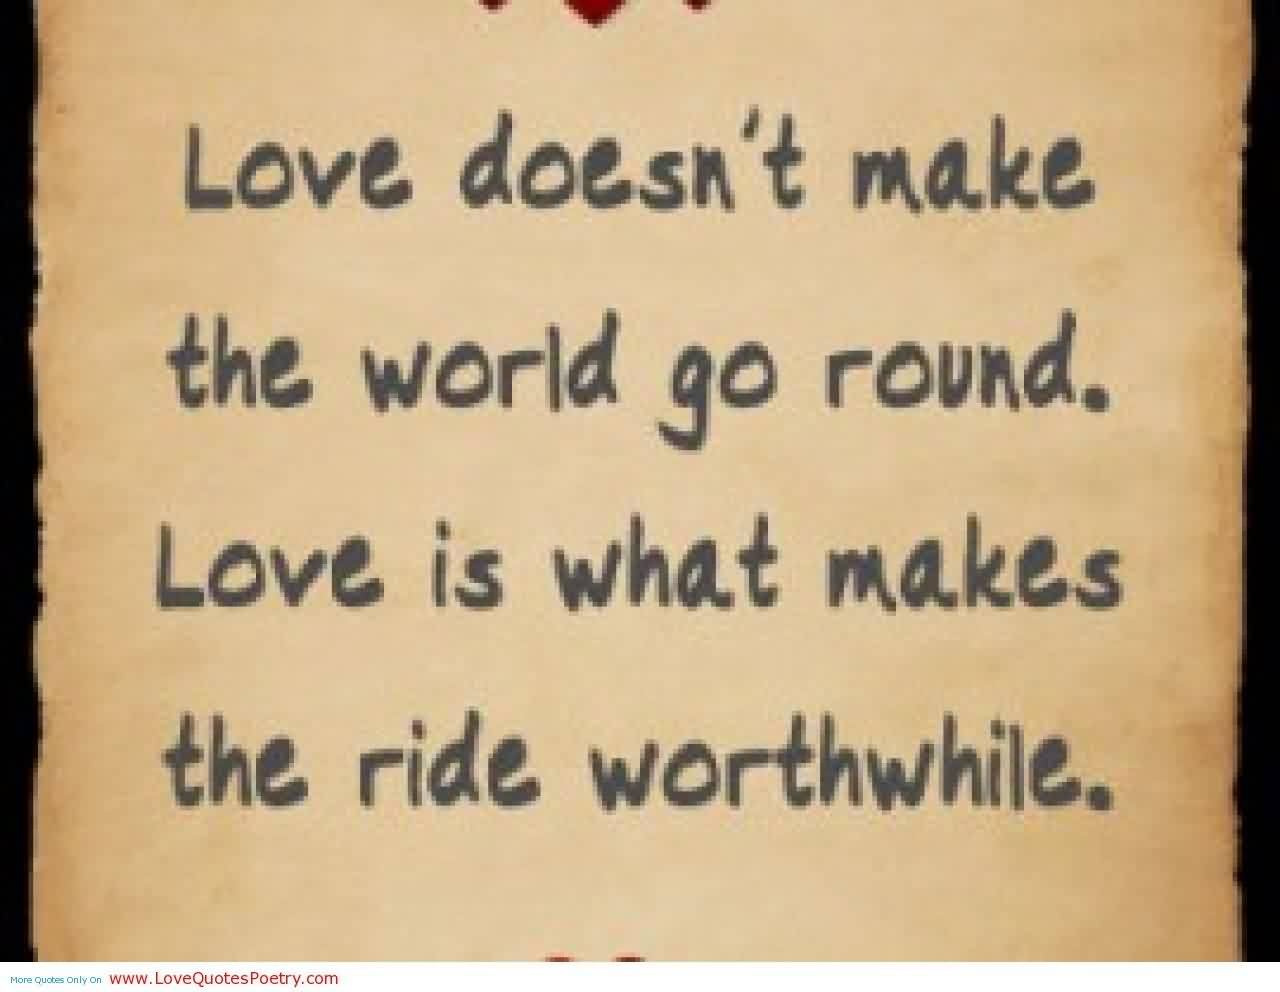 Cute Love Message-Love is what makes the ride worthwhile